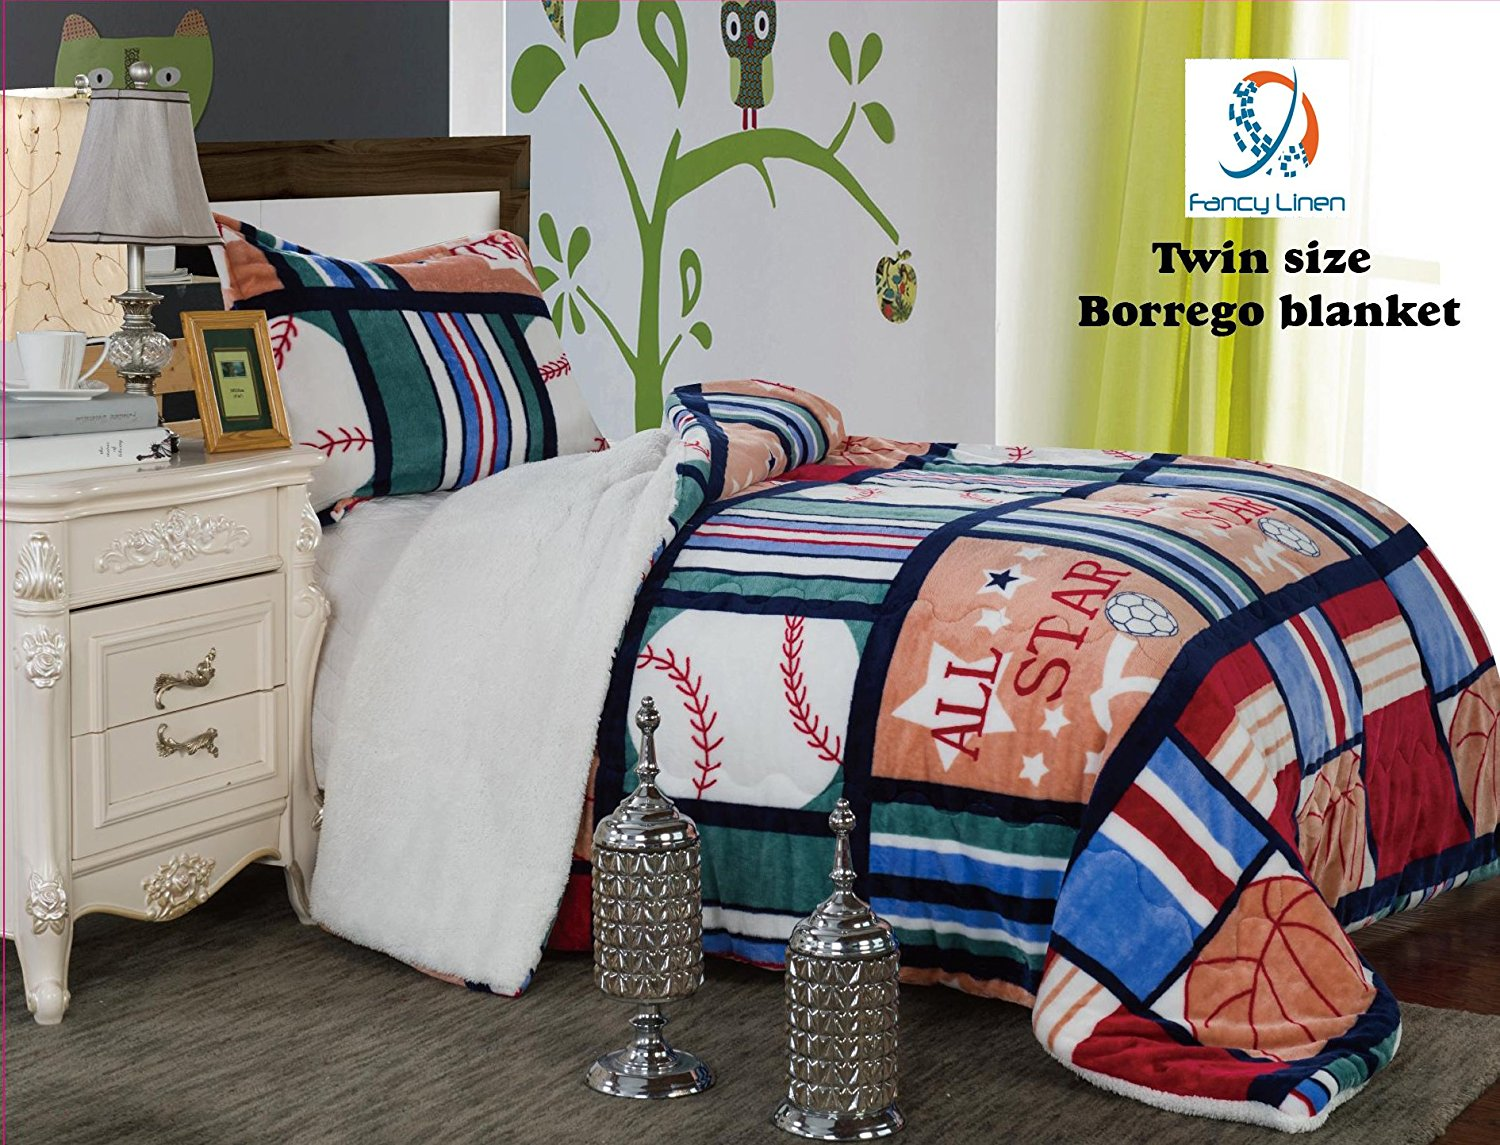 Fancy Collection 2pc Twin Size Teens boys Blanket Sumptuously Soft Plush Sport Blue Red... by